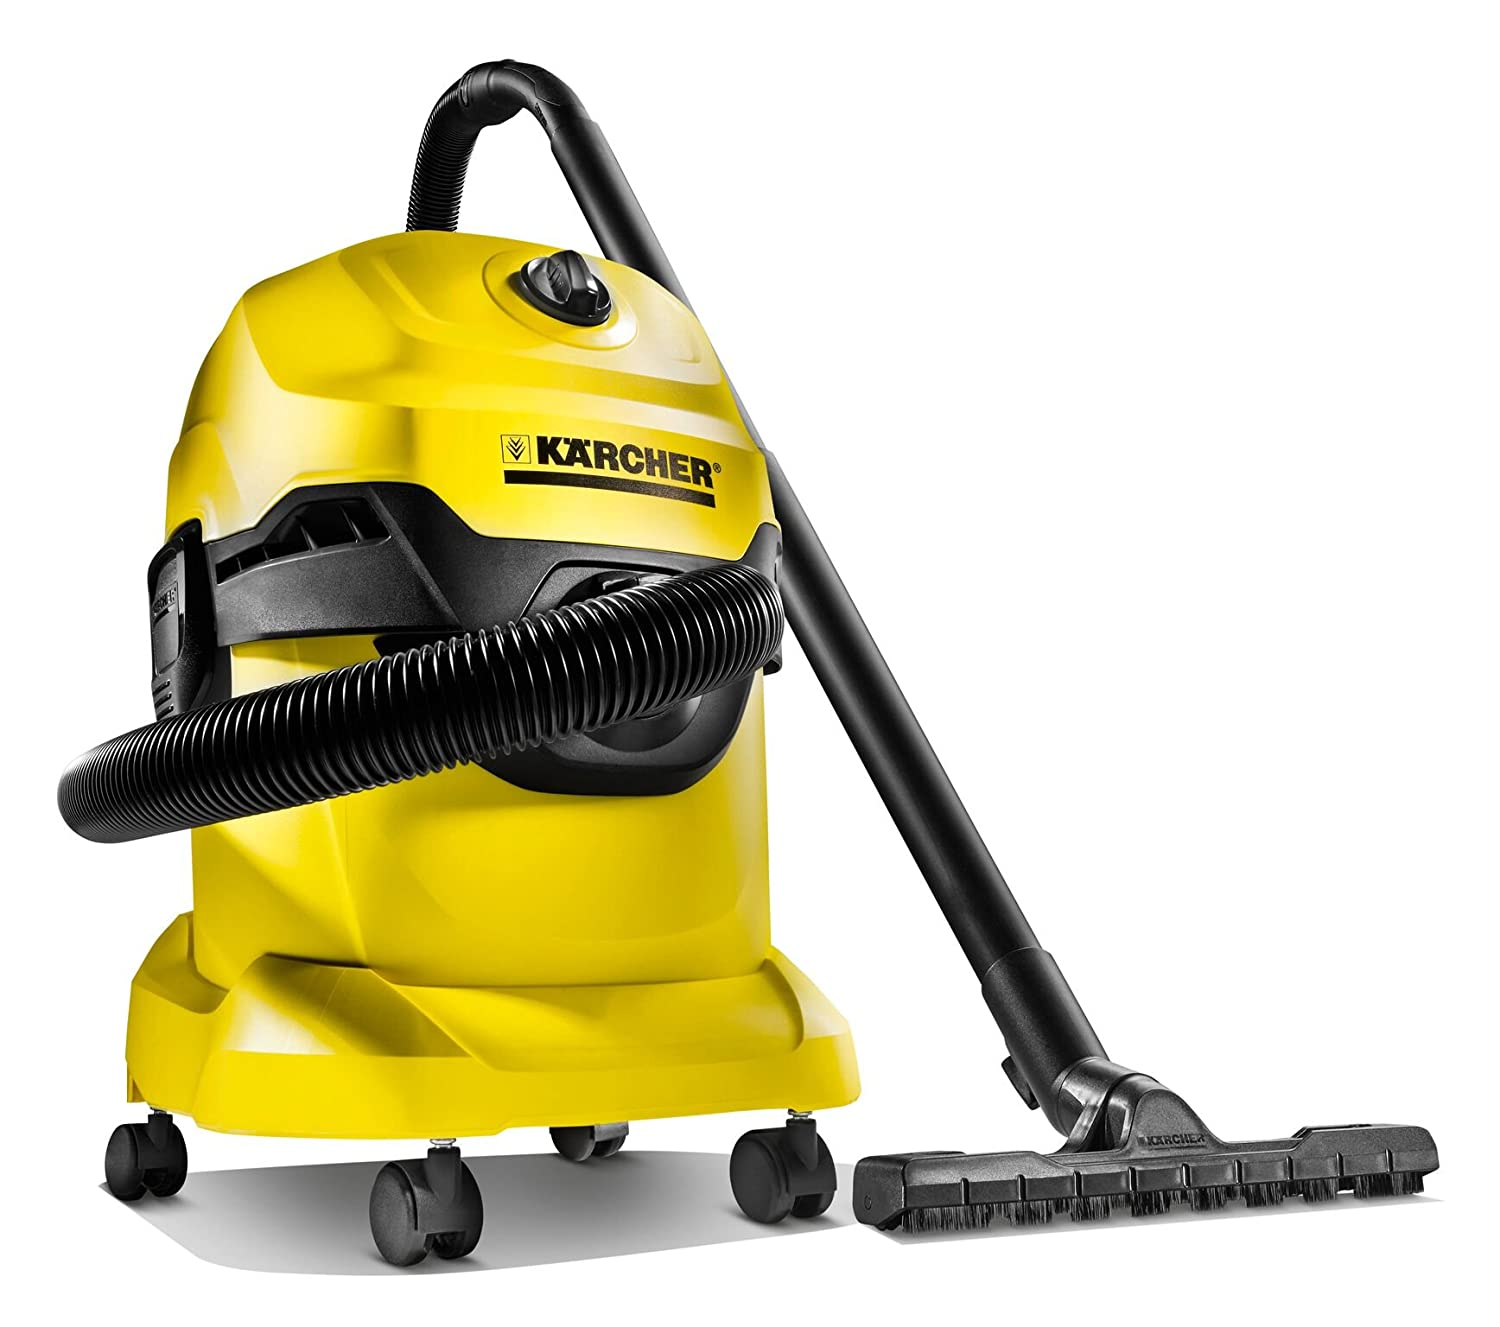 Karcher Multi Purpose Cleaner WD 4 (Spanish Version) Kärcher